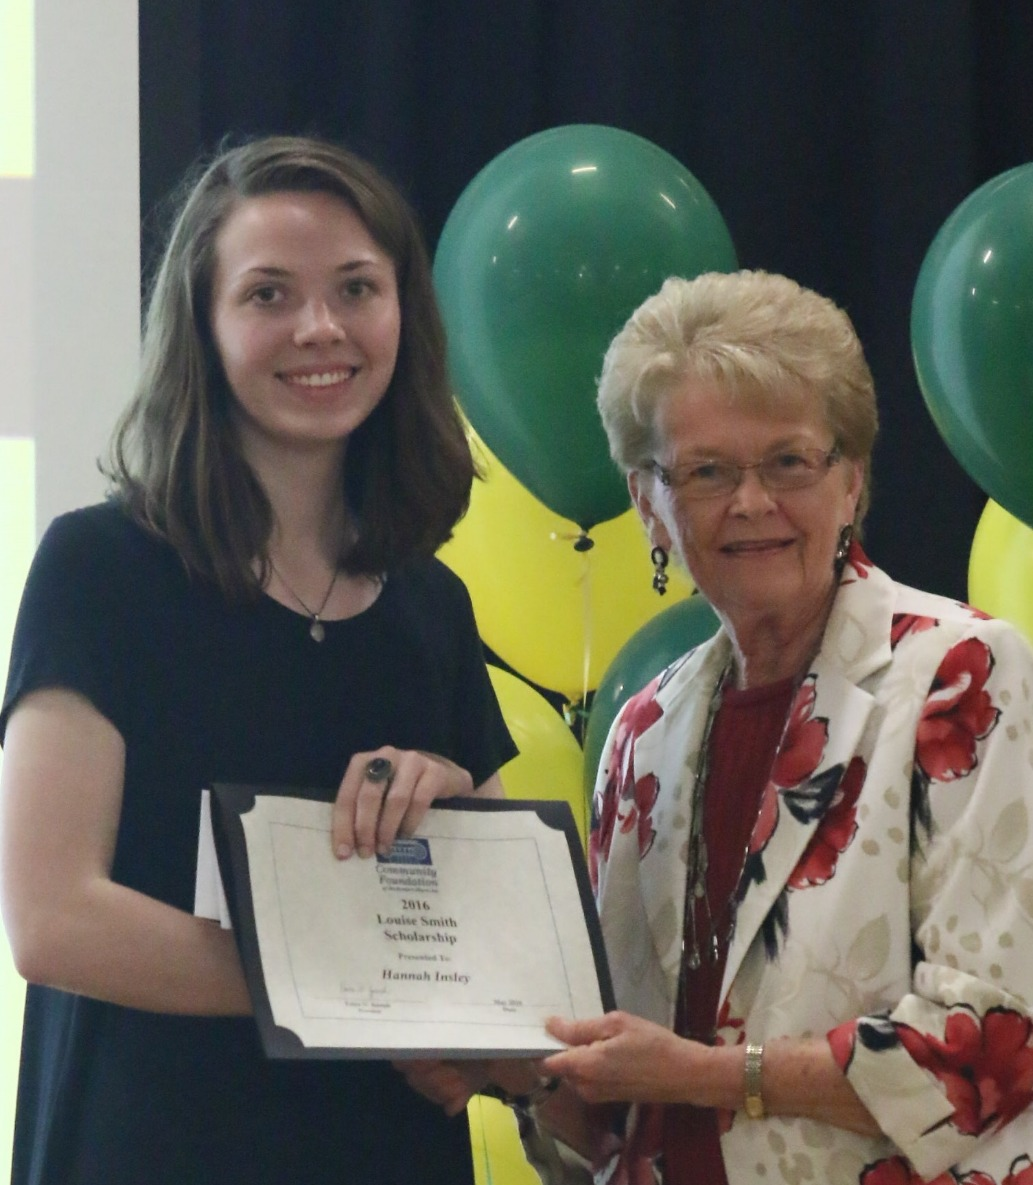 Senior Awards 2016 - Louise Smith (2)_edited